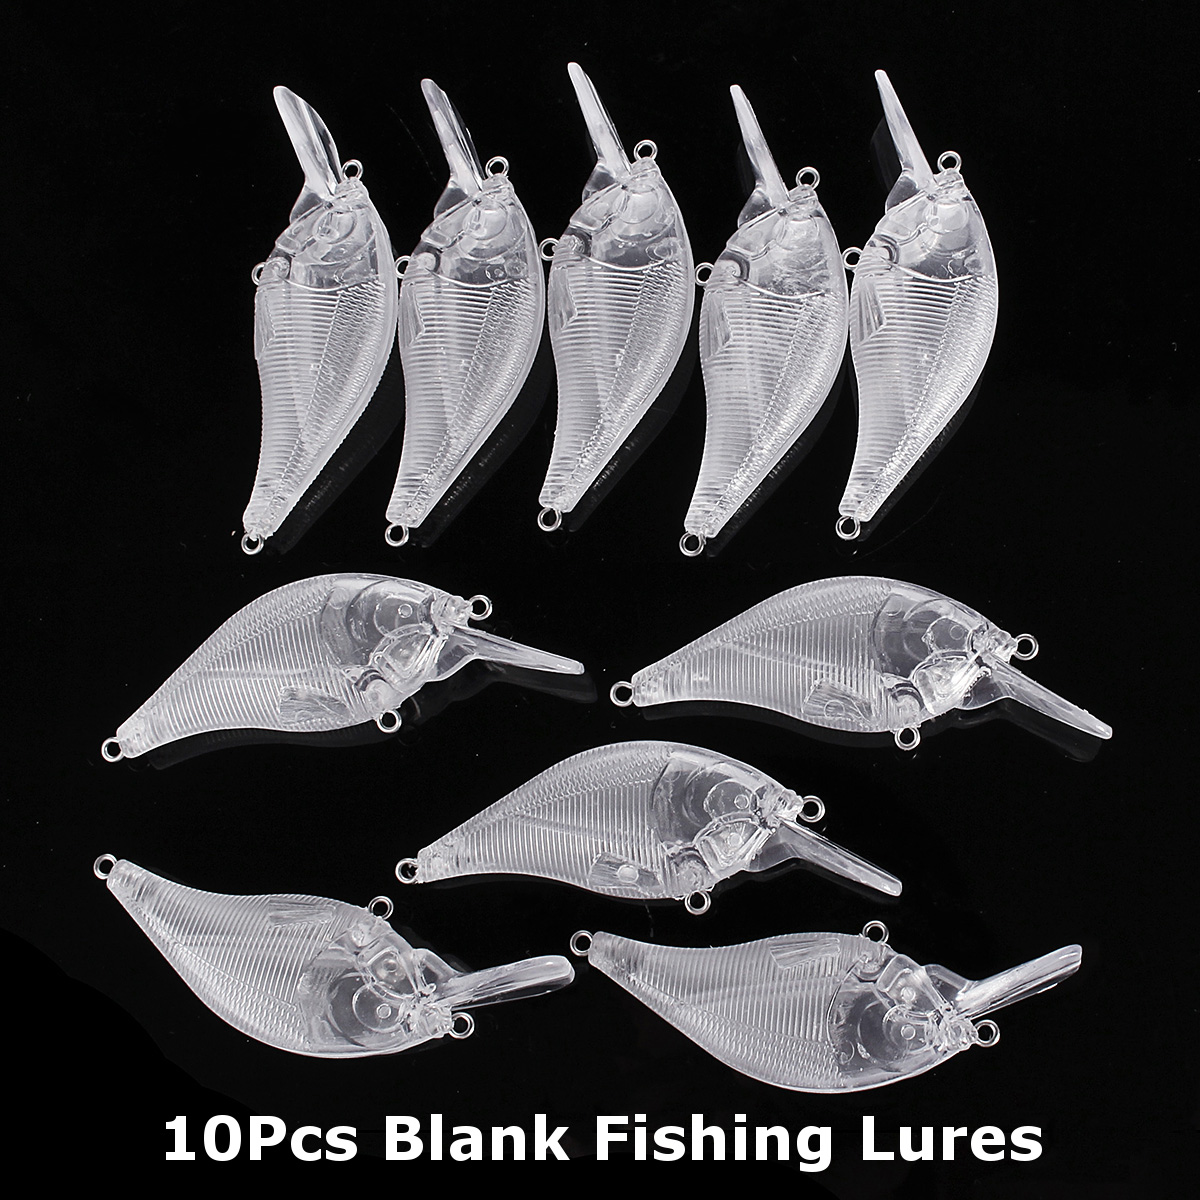 ZANLURE 10Pcs/Set 7 5CM 10 2G Unpainted Crankbait Saltwater Fishing Baits  Wobbler Blank Fishing Lure